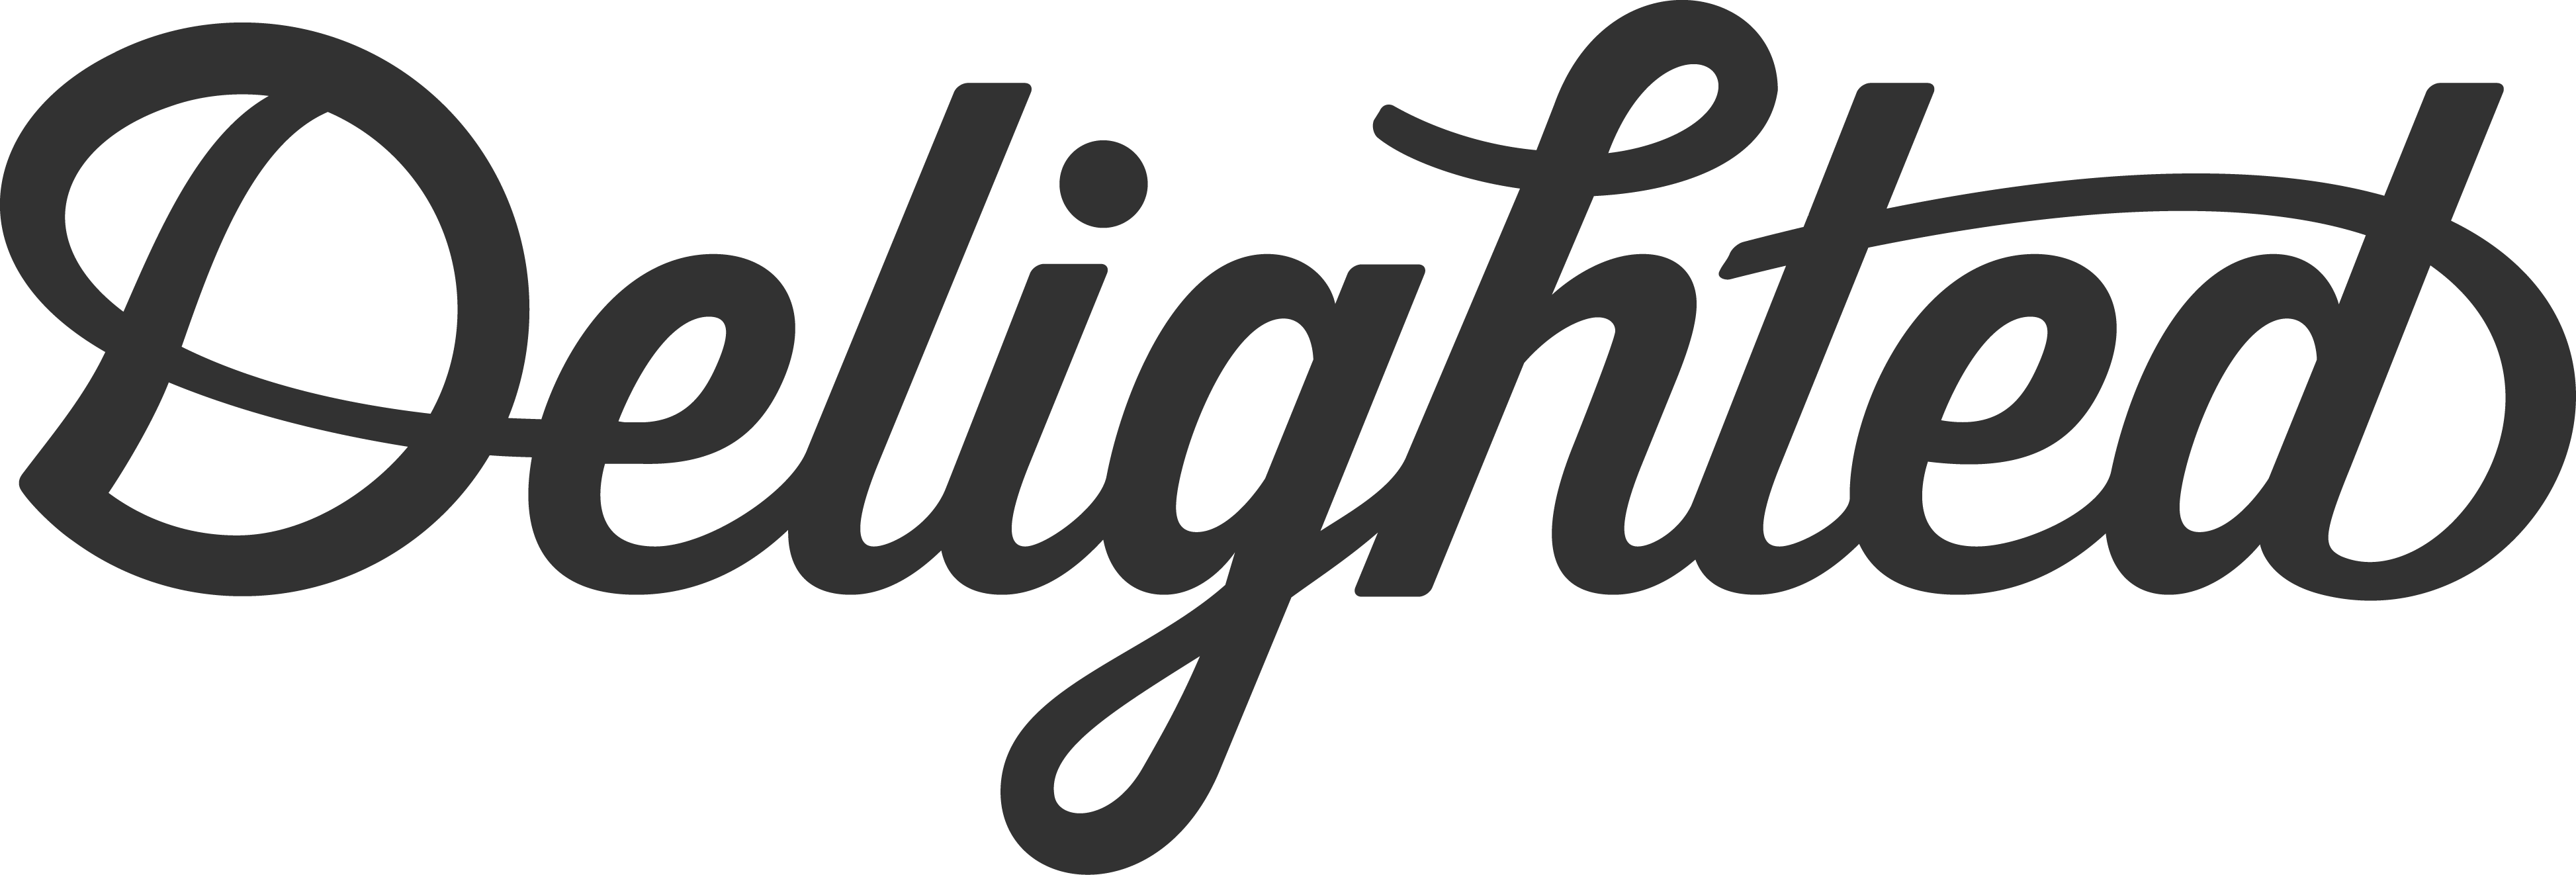 Delighted Logo